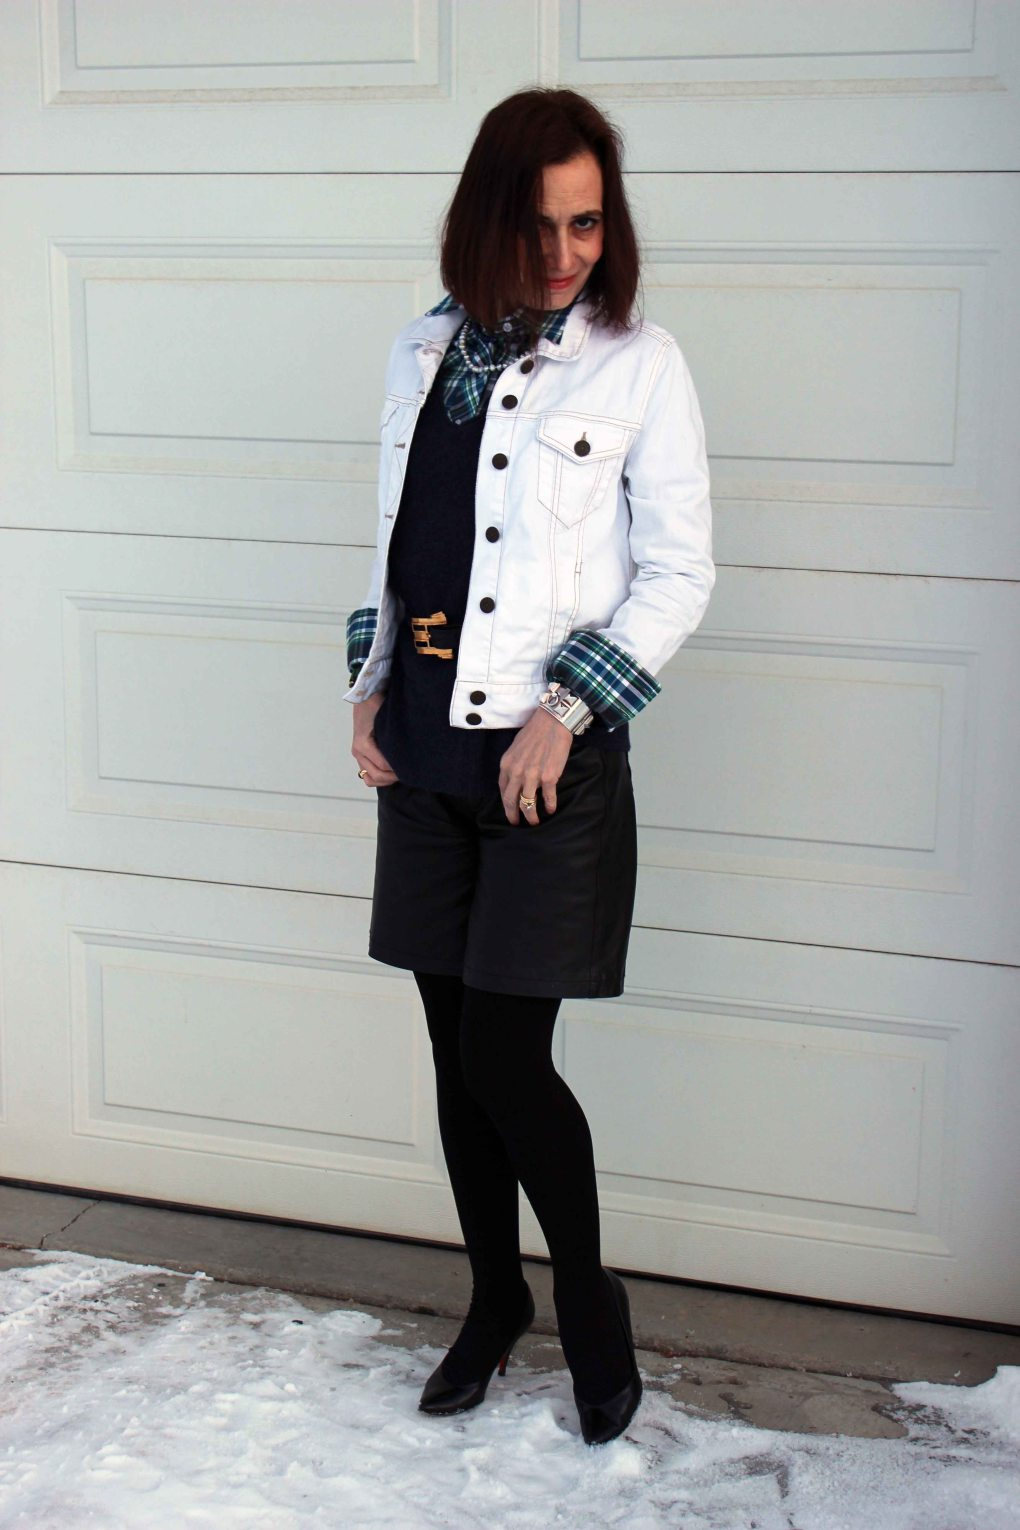 #fashionover50 woman in casual posh outfit with plaid shirt and leather shorts